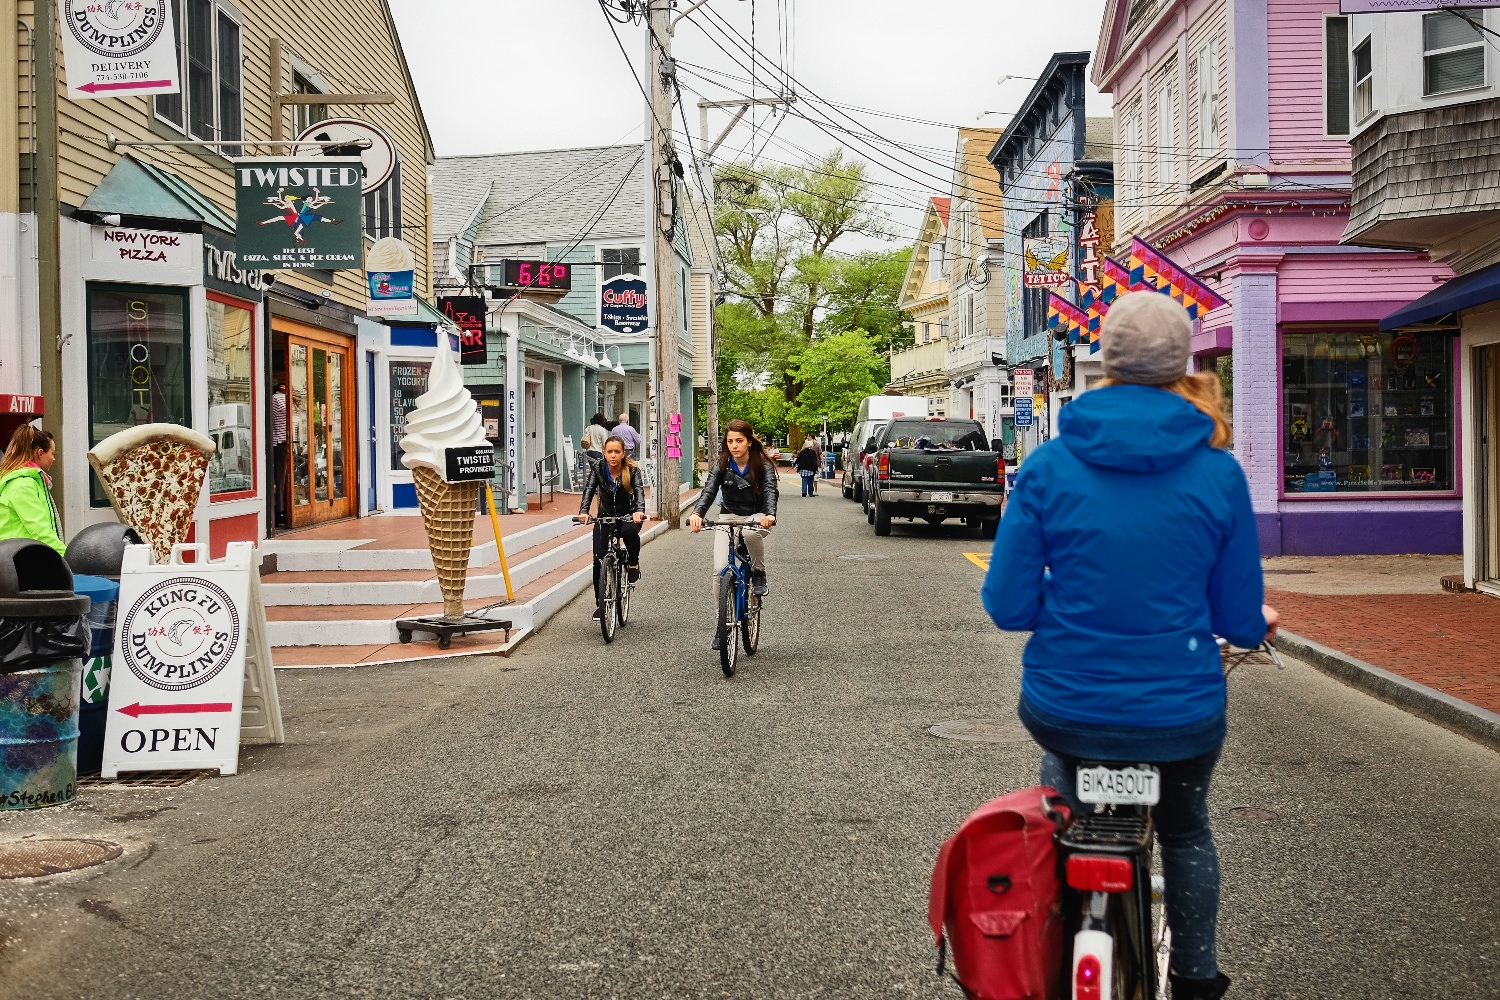 Riding through Provincetown, which has tons of biking locals and tourists, but we wish it was a pedestrian mall closed to cars.